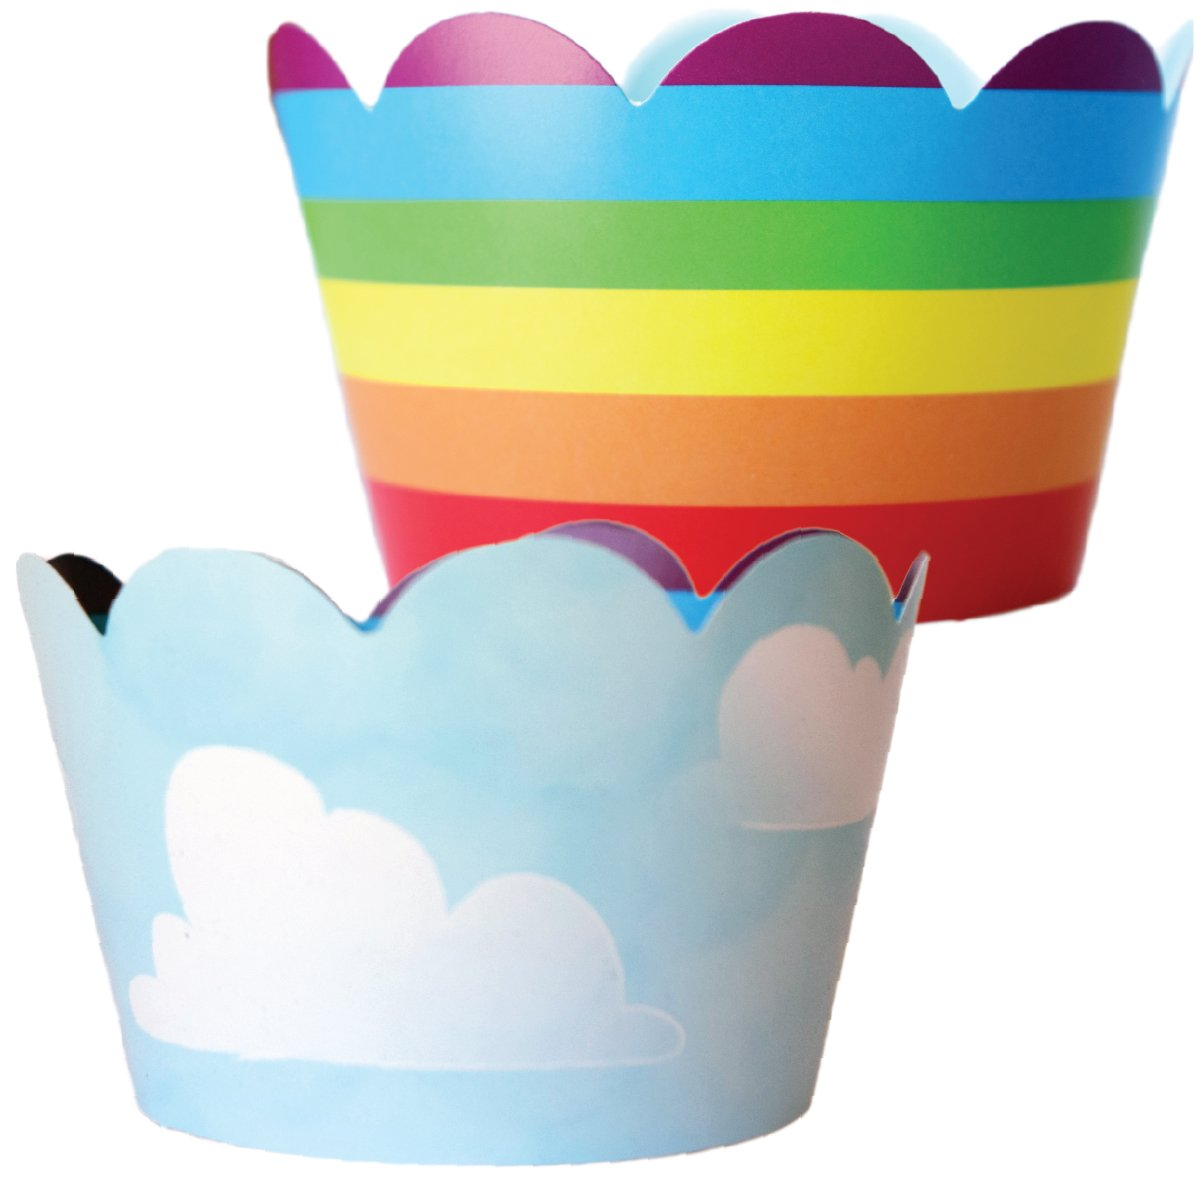 Rainbow Cupcake Wrappers, Unicorn Party Supplies, 36 Cloud Cup Cake Liner Wraps, Airplane Birthday Favor Bag Holders, Wizard of Oz Theme Baby Shower Decor, Reversible, Hot Air Balloon Decorations